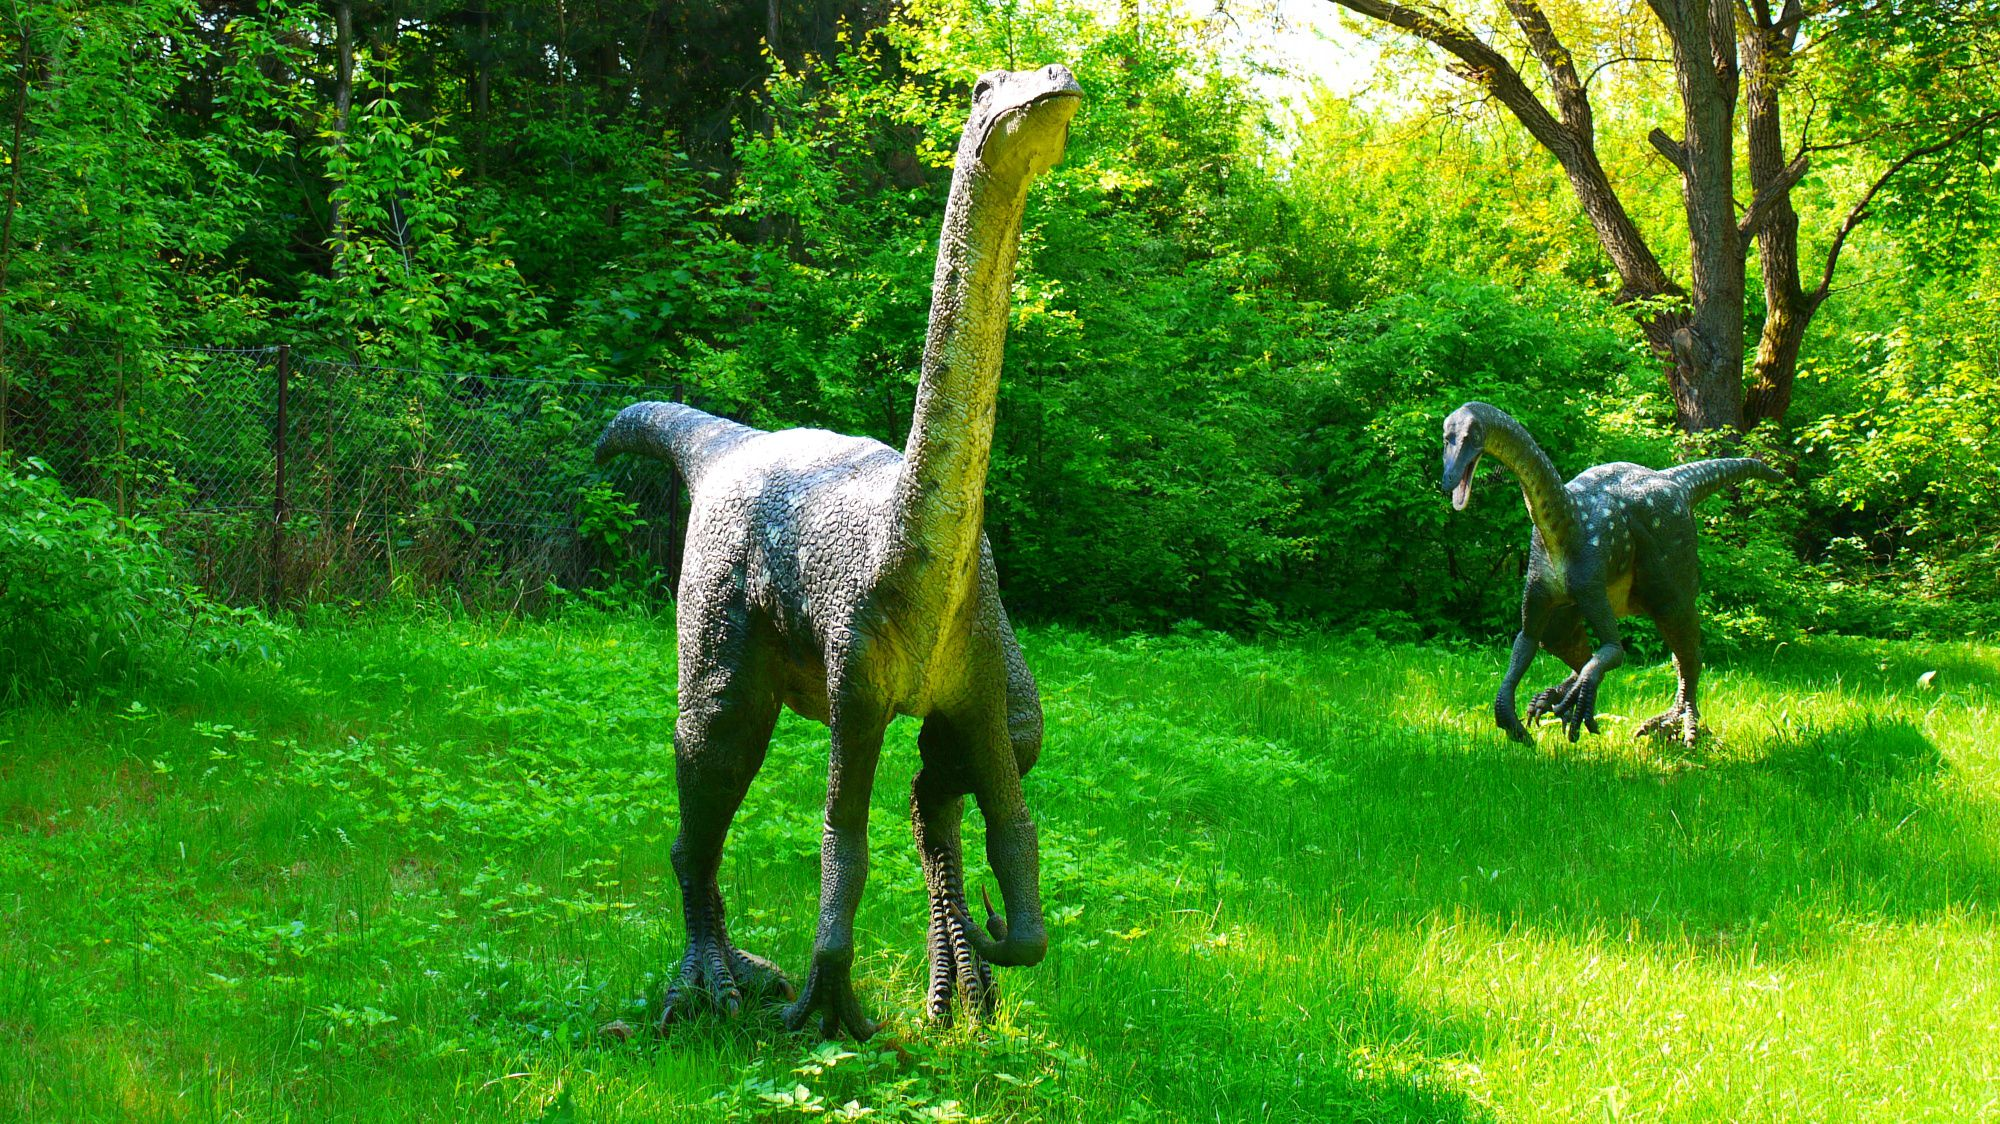 A couple of spotted <i>Ornithomimus</i> dinosaur models located at the Czech Republic's DinoPark in Vyškov